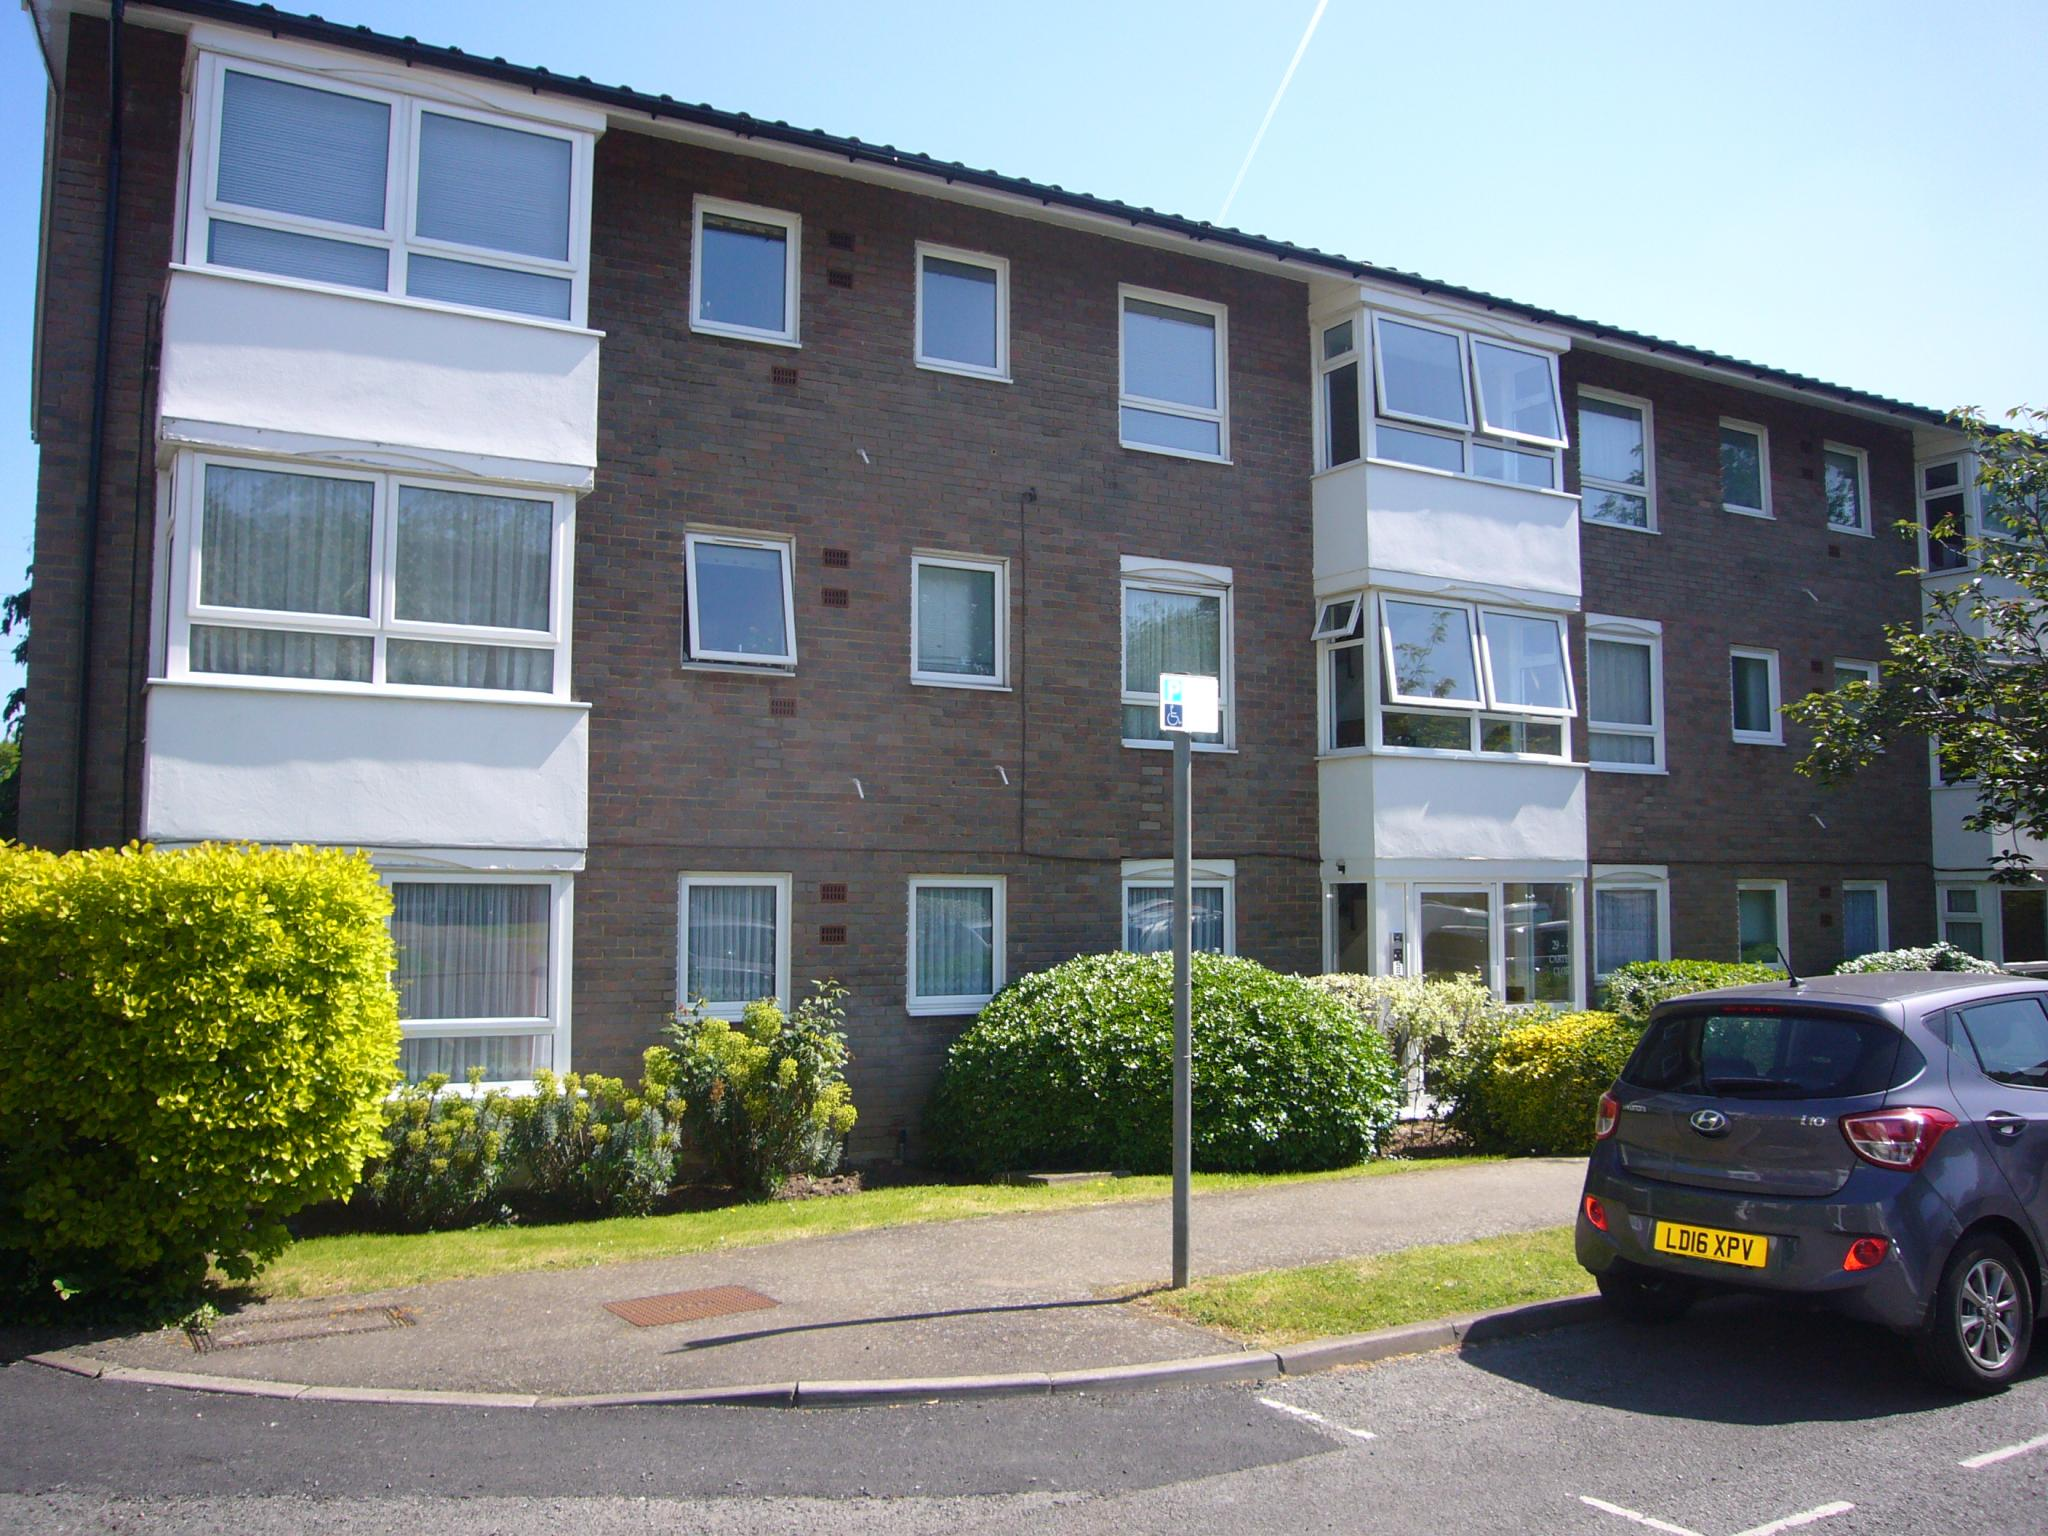 2 bedroom apartment flat/apartment Let Agreed in Worcester Park - Photograph 1.